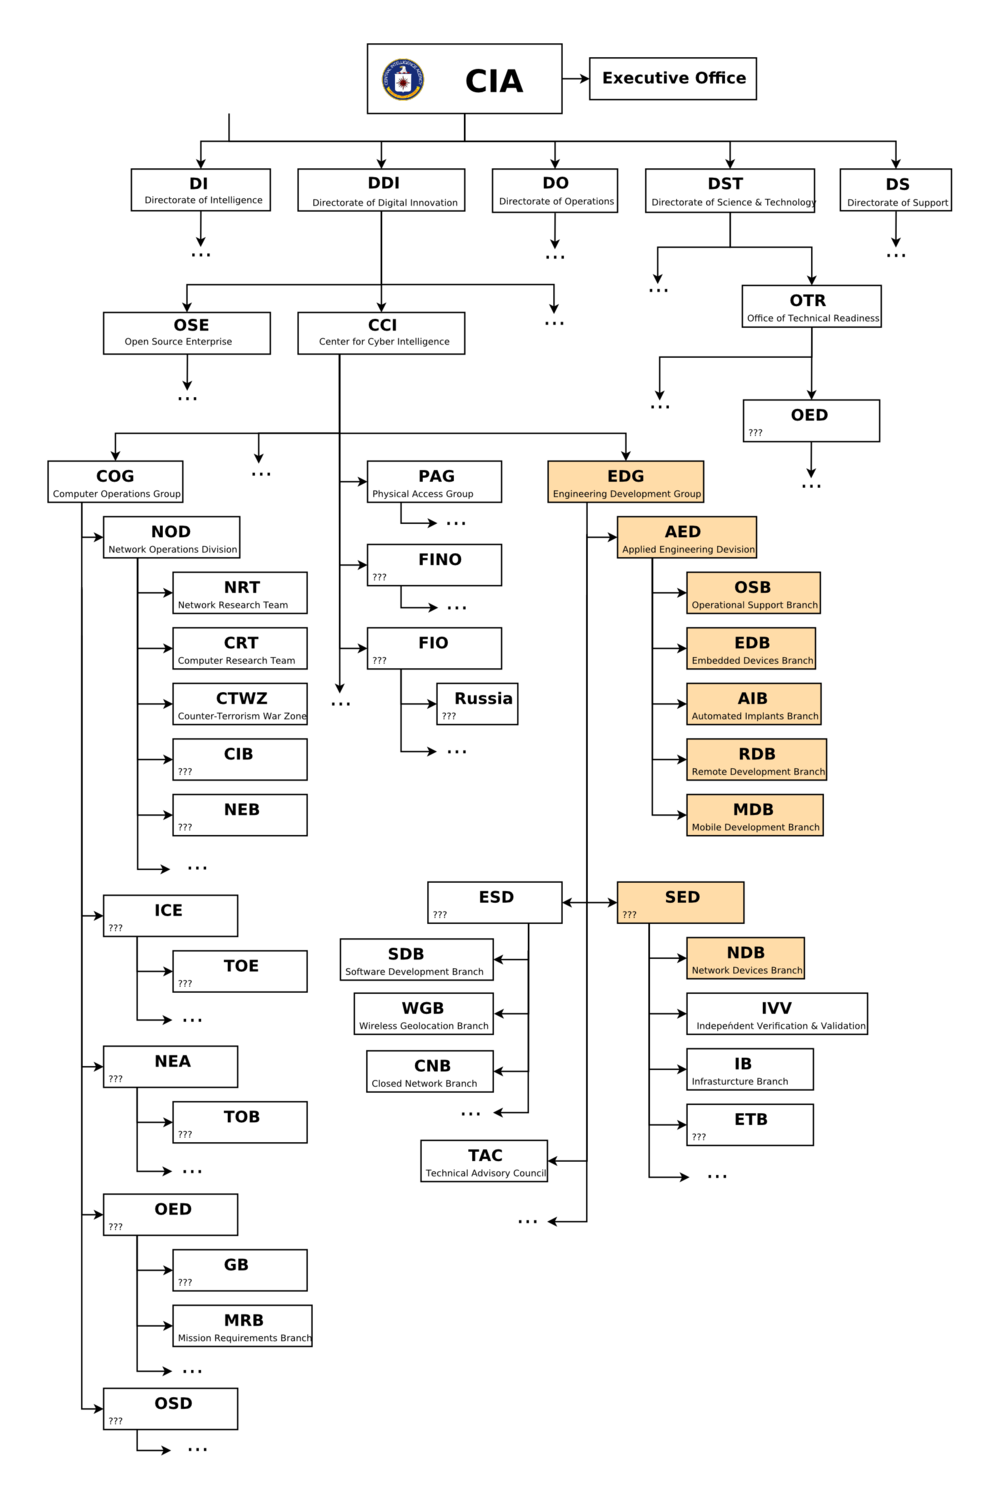 "In a flowchart released by WikiLeaks, the structure of the  U.S. Central Intelligence Agency  and some of its divisions, units, and programs were revealed. Many were labeled with acronyms without any further explanation. WikiLeaks cautioned that its chart was incomplete : ""It is intended to be used as a rough outline of the internal organization ; please be aware that the reconstructed org chart is incomplete and that internal reorganizations occur frequently."" Source : WikiLeaks"